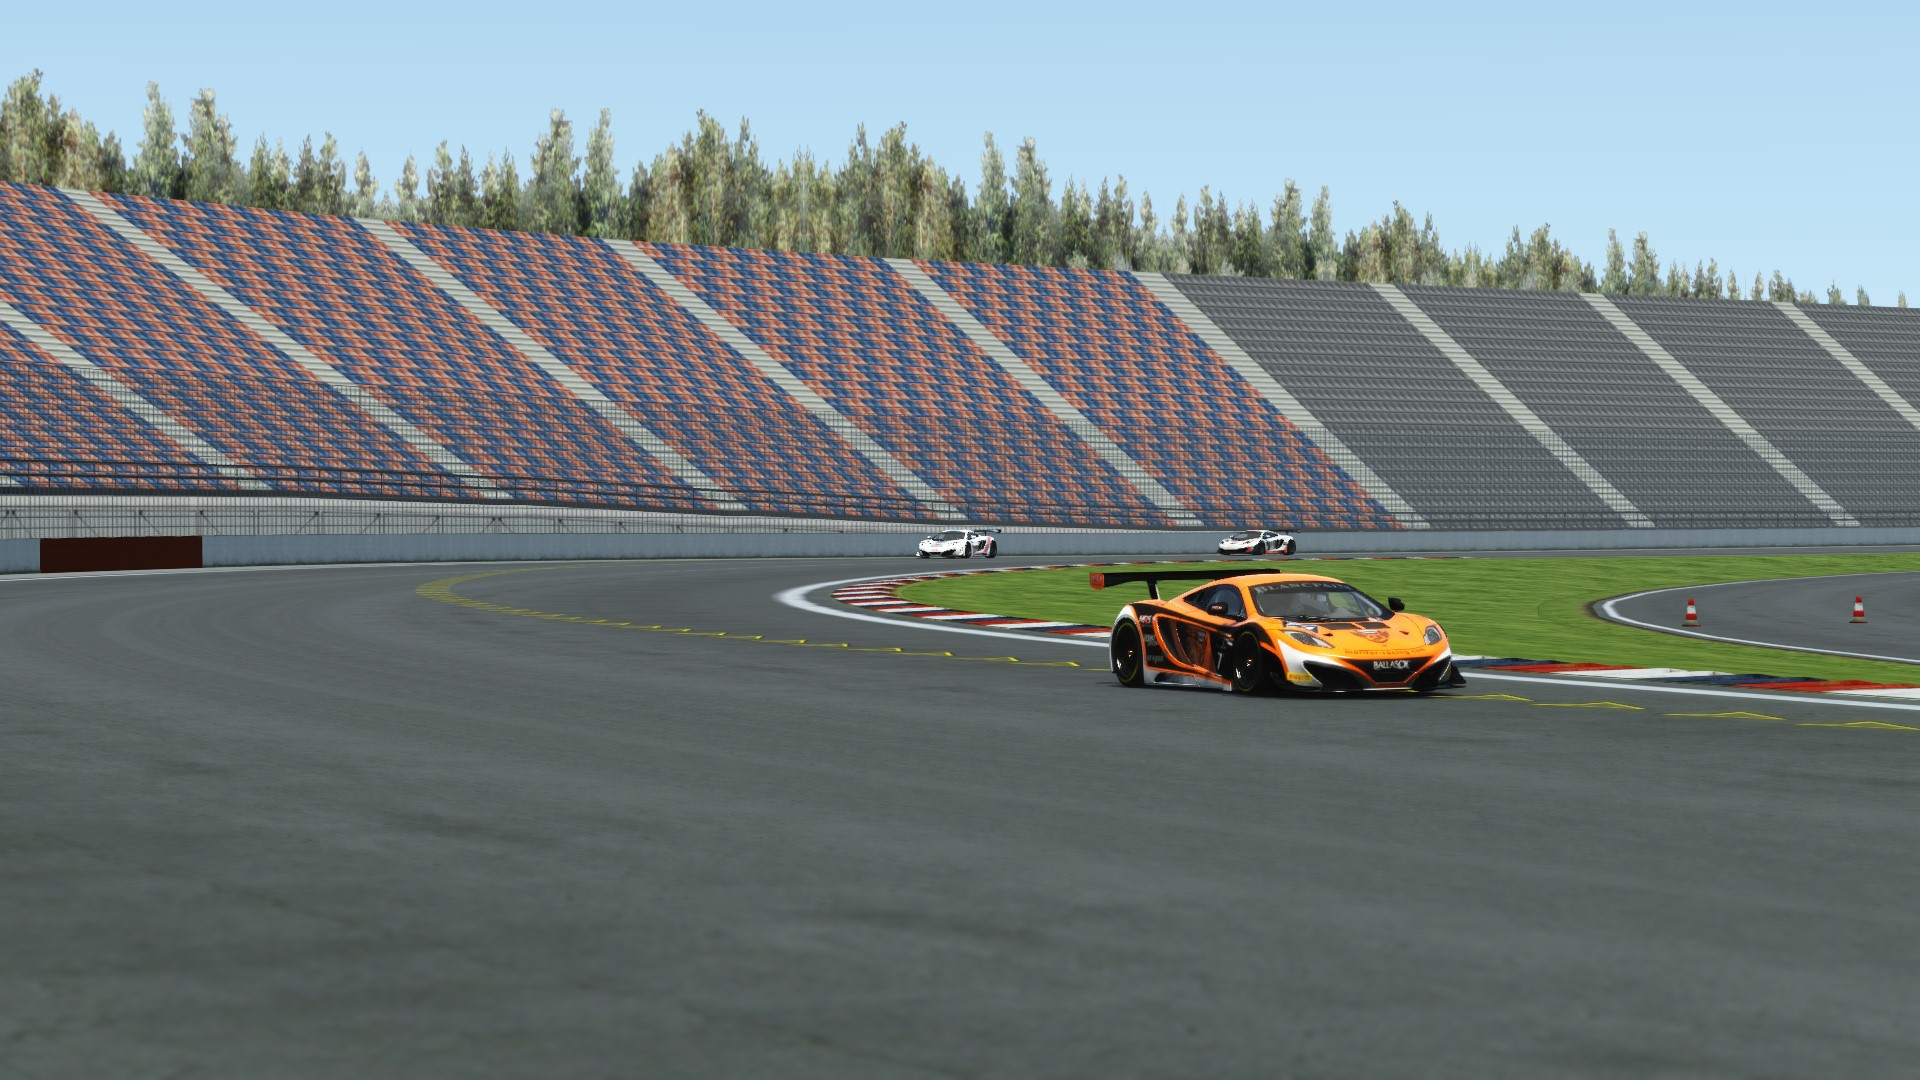 Screenshot_mclaren_mp412c_gt3_eurospeedwaygp_23-8-115-20-39-53.jpg